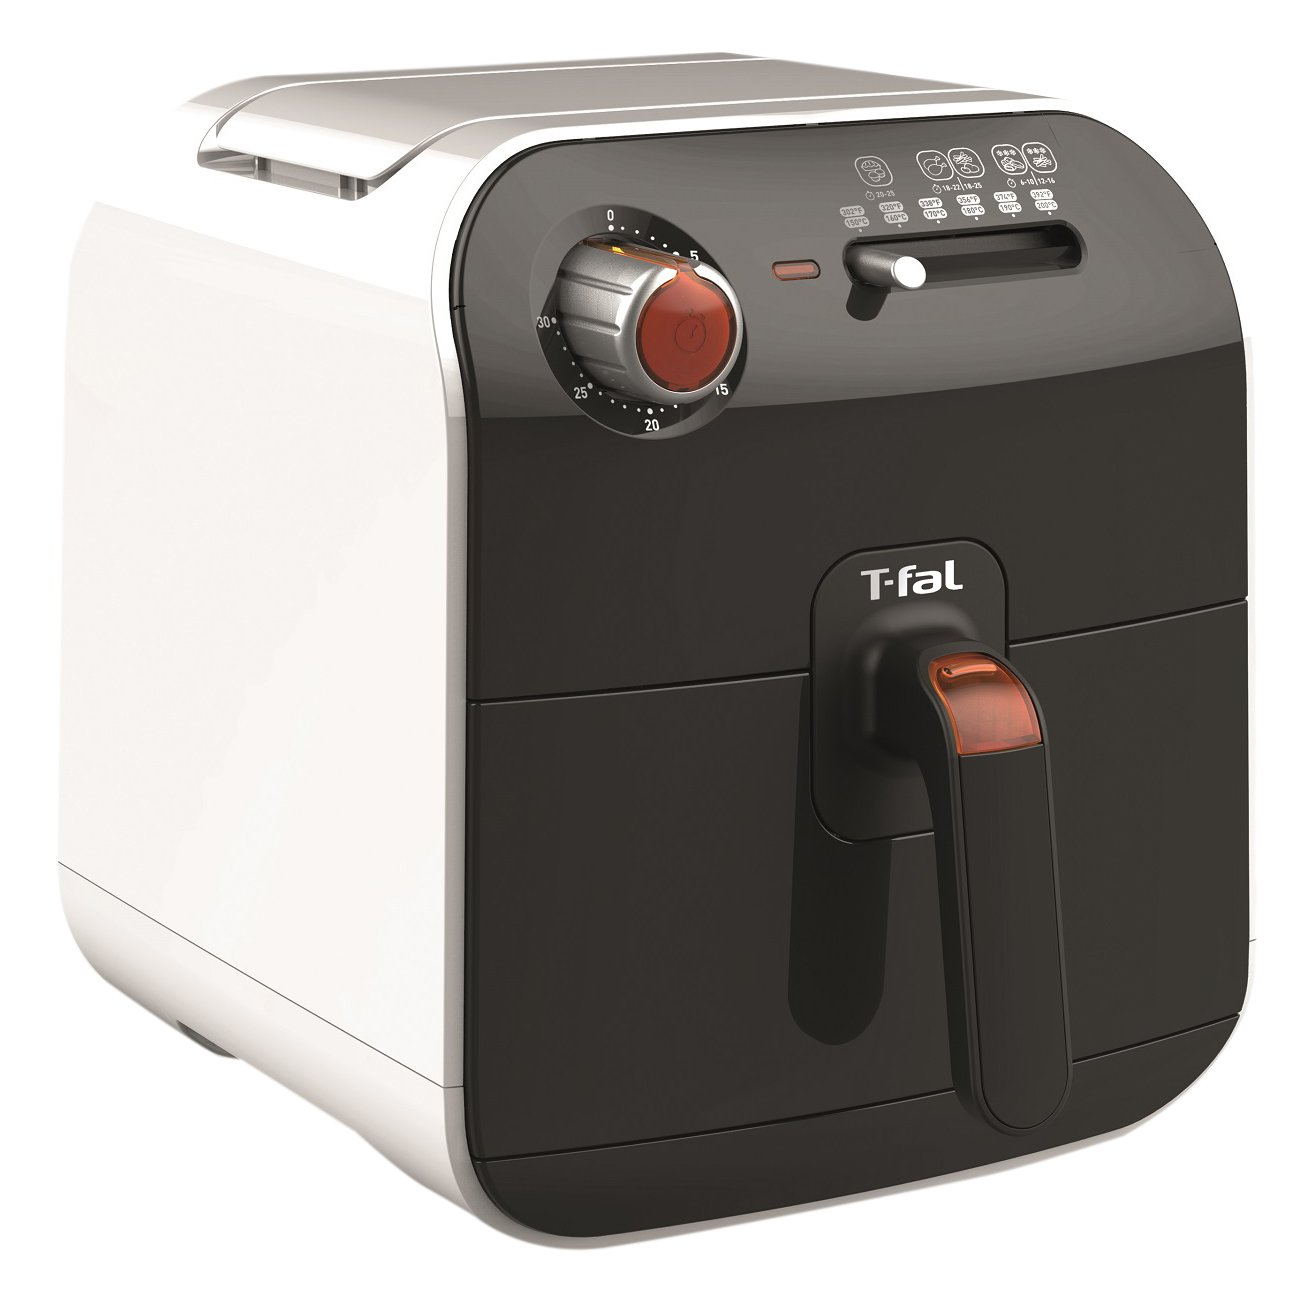 $99 Only T-fal Fry Delight Air Fryer-Mechanical Control, Black and White